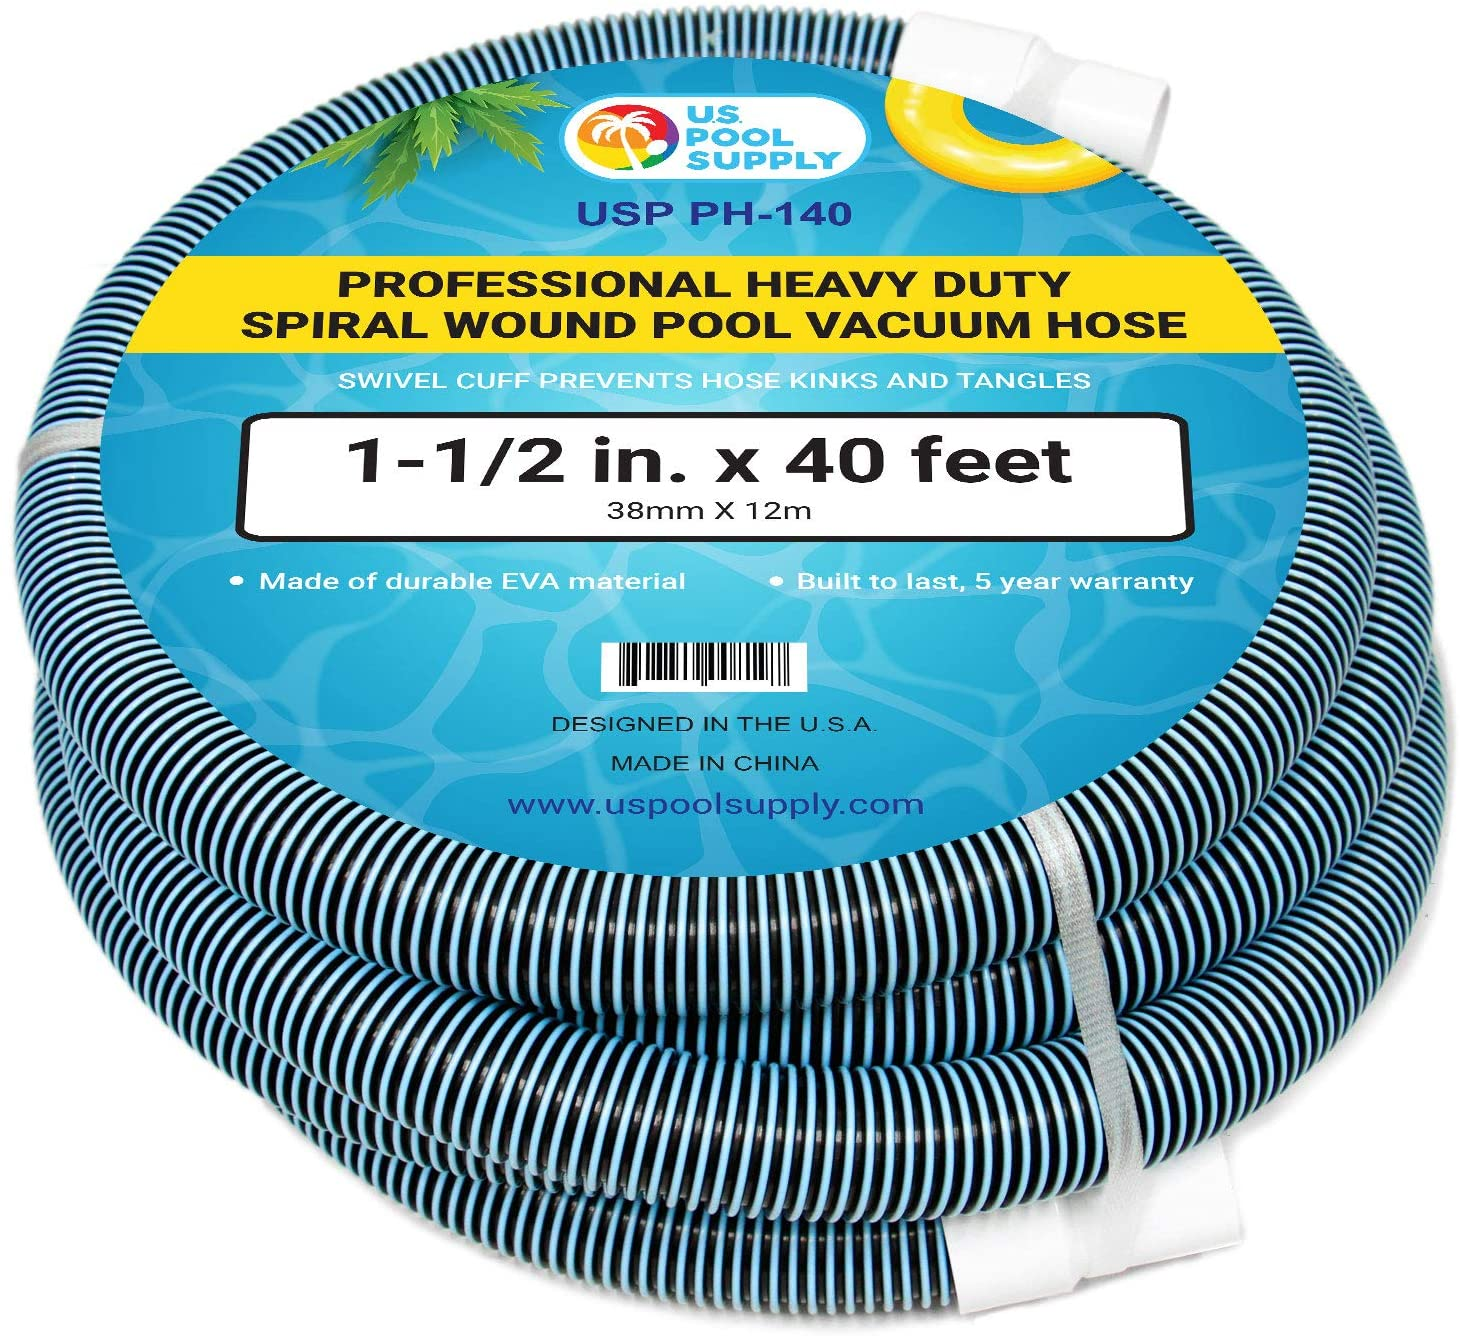 """U.S. Pool Supply 1-1/2"""" x 40 Foot Professional Heavy Duty Spiral Wound Swimming Pool Vacuum Hose with Swivel Cuff"""